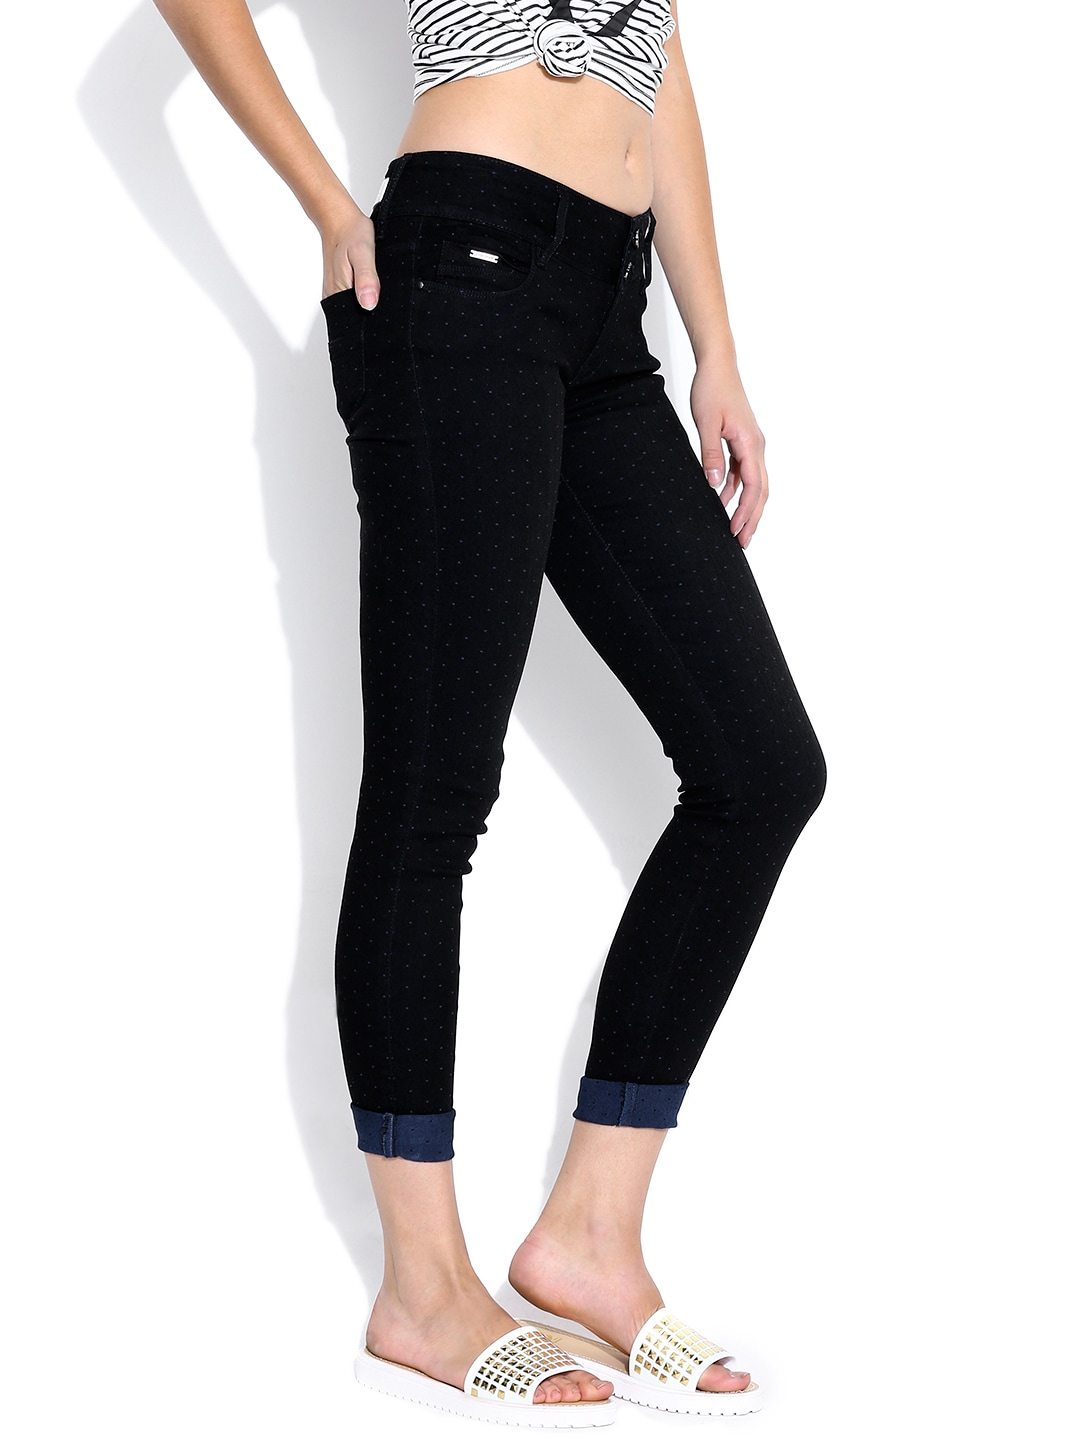 Buy Lotus Black Dot Print Comfort Fit Jeans - Jeans for Women | Myntra